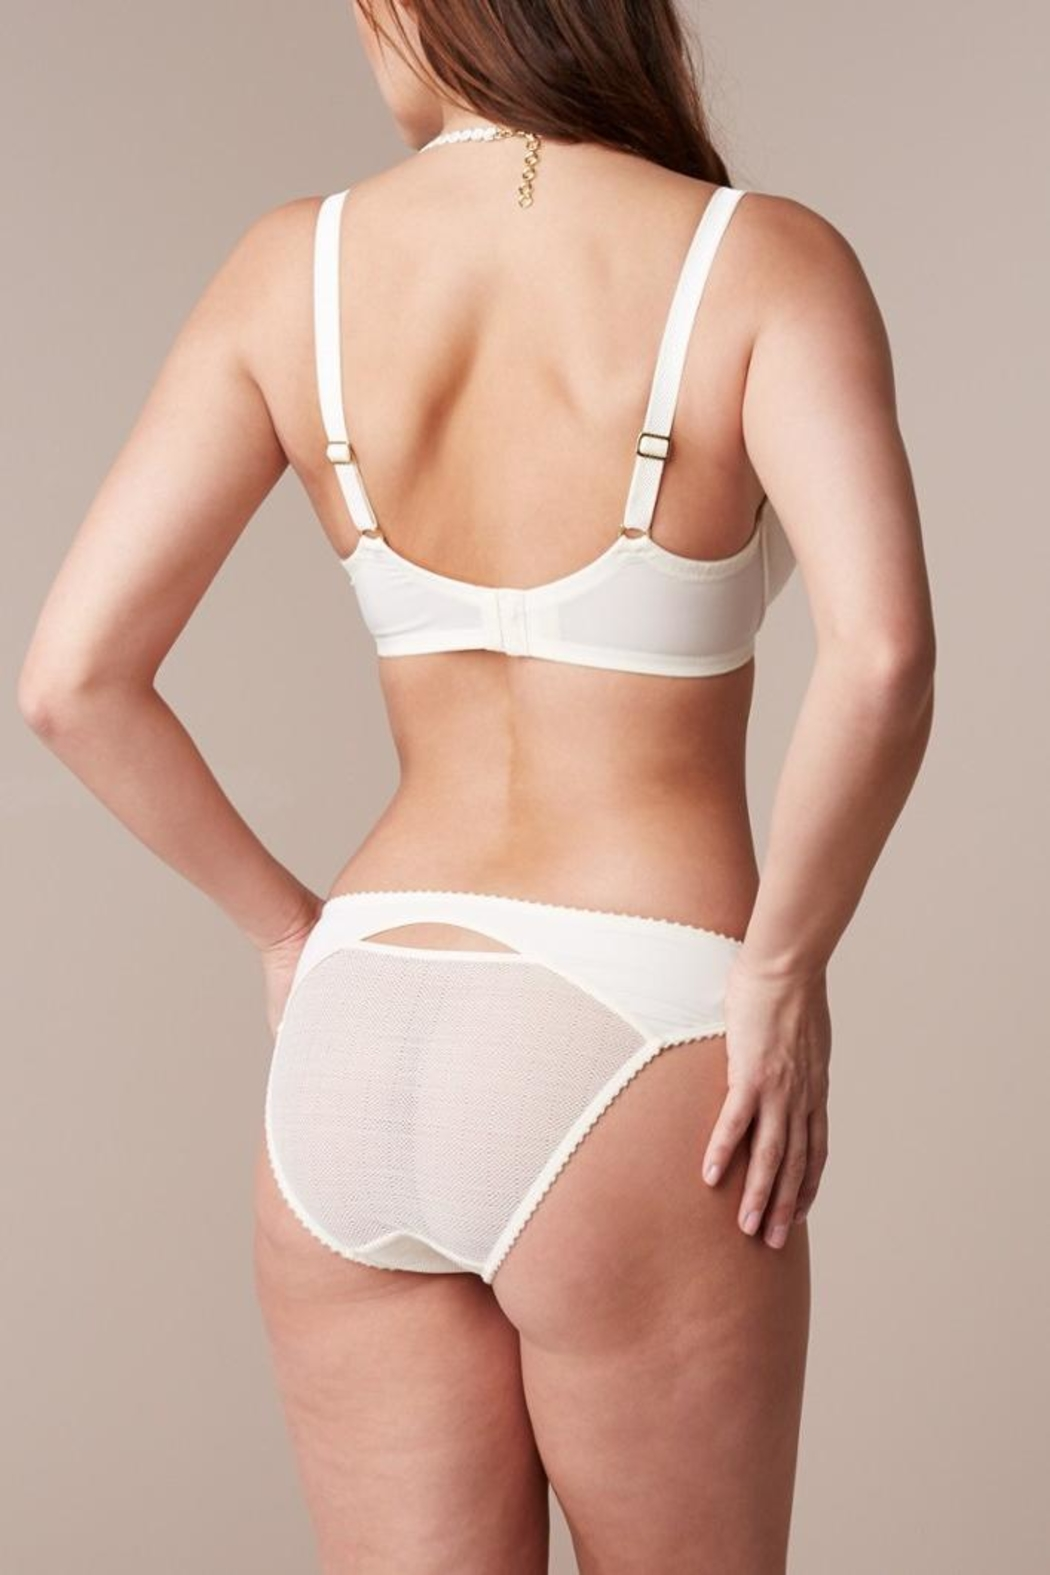 marlies dekkers Mauritshuis Peep-Back Brief - Main Image